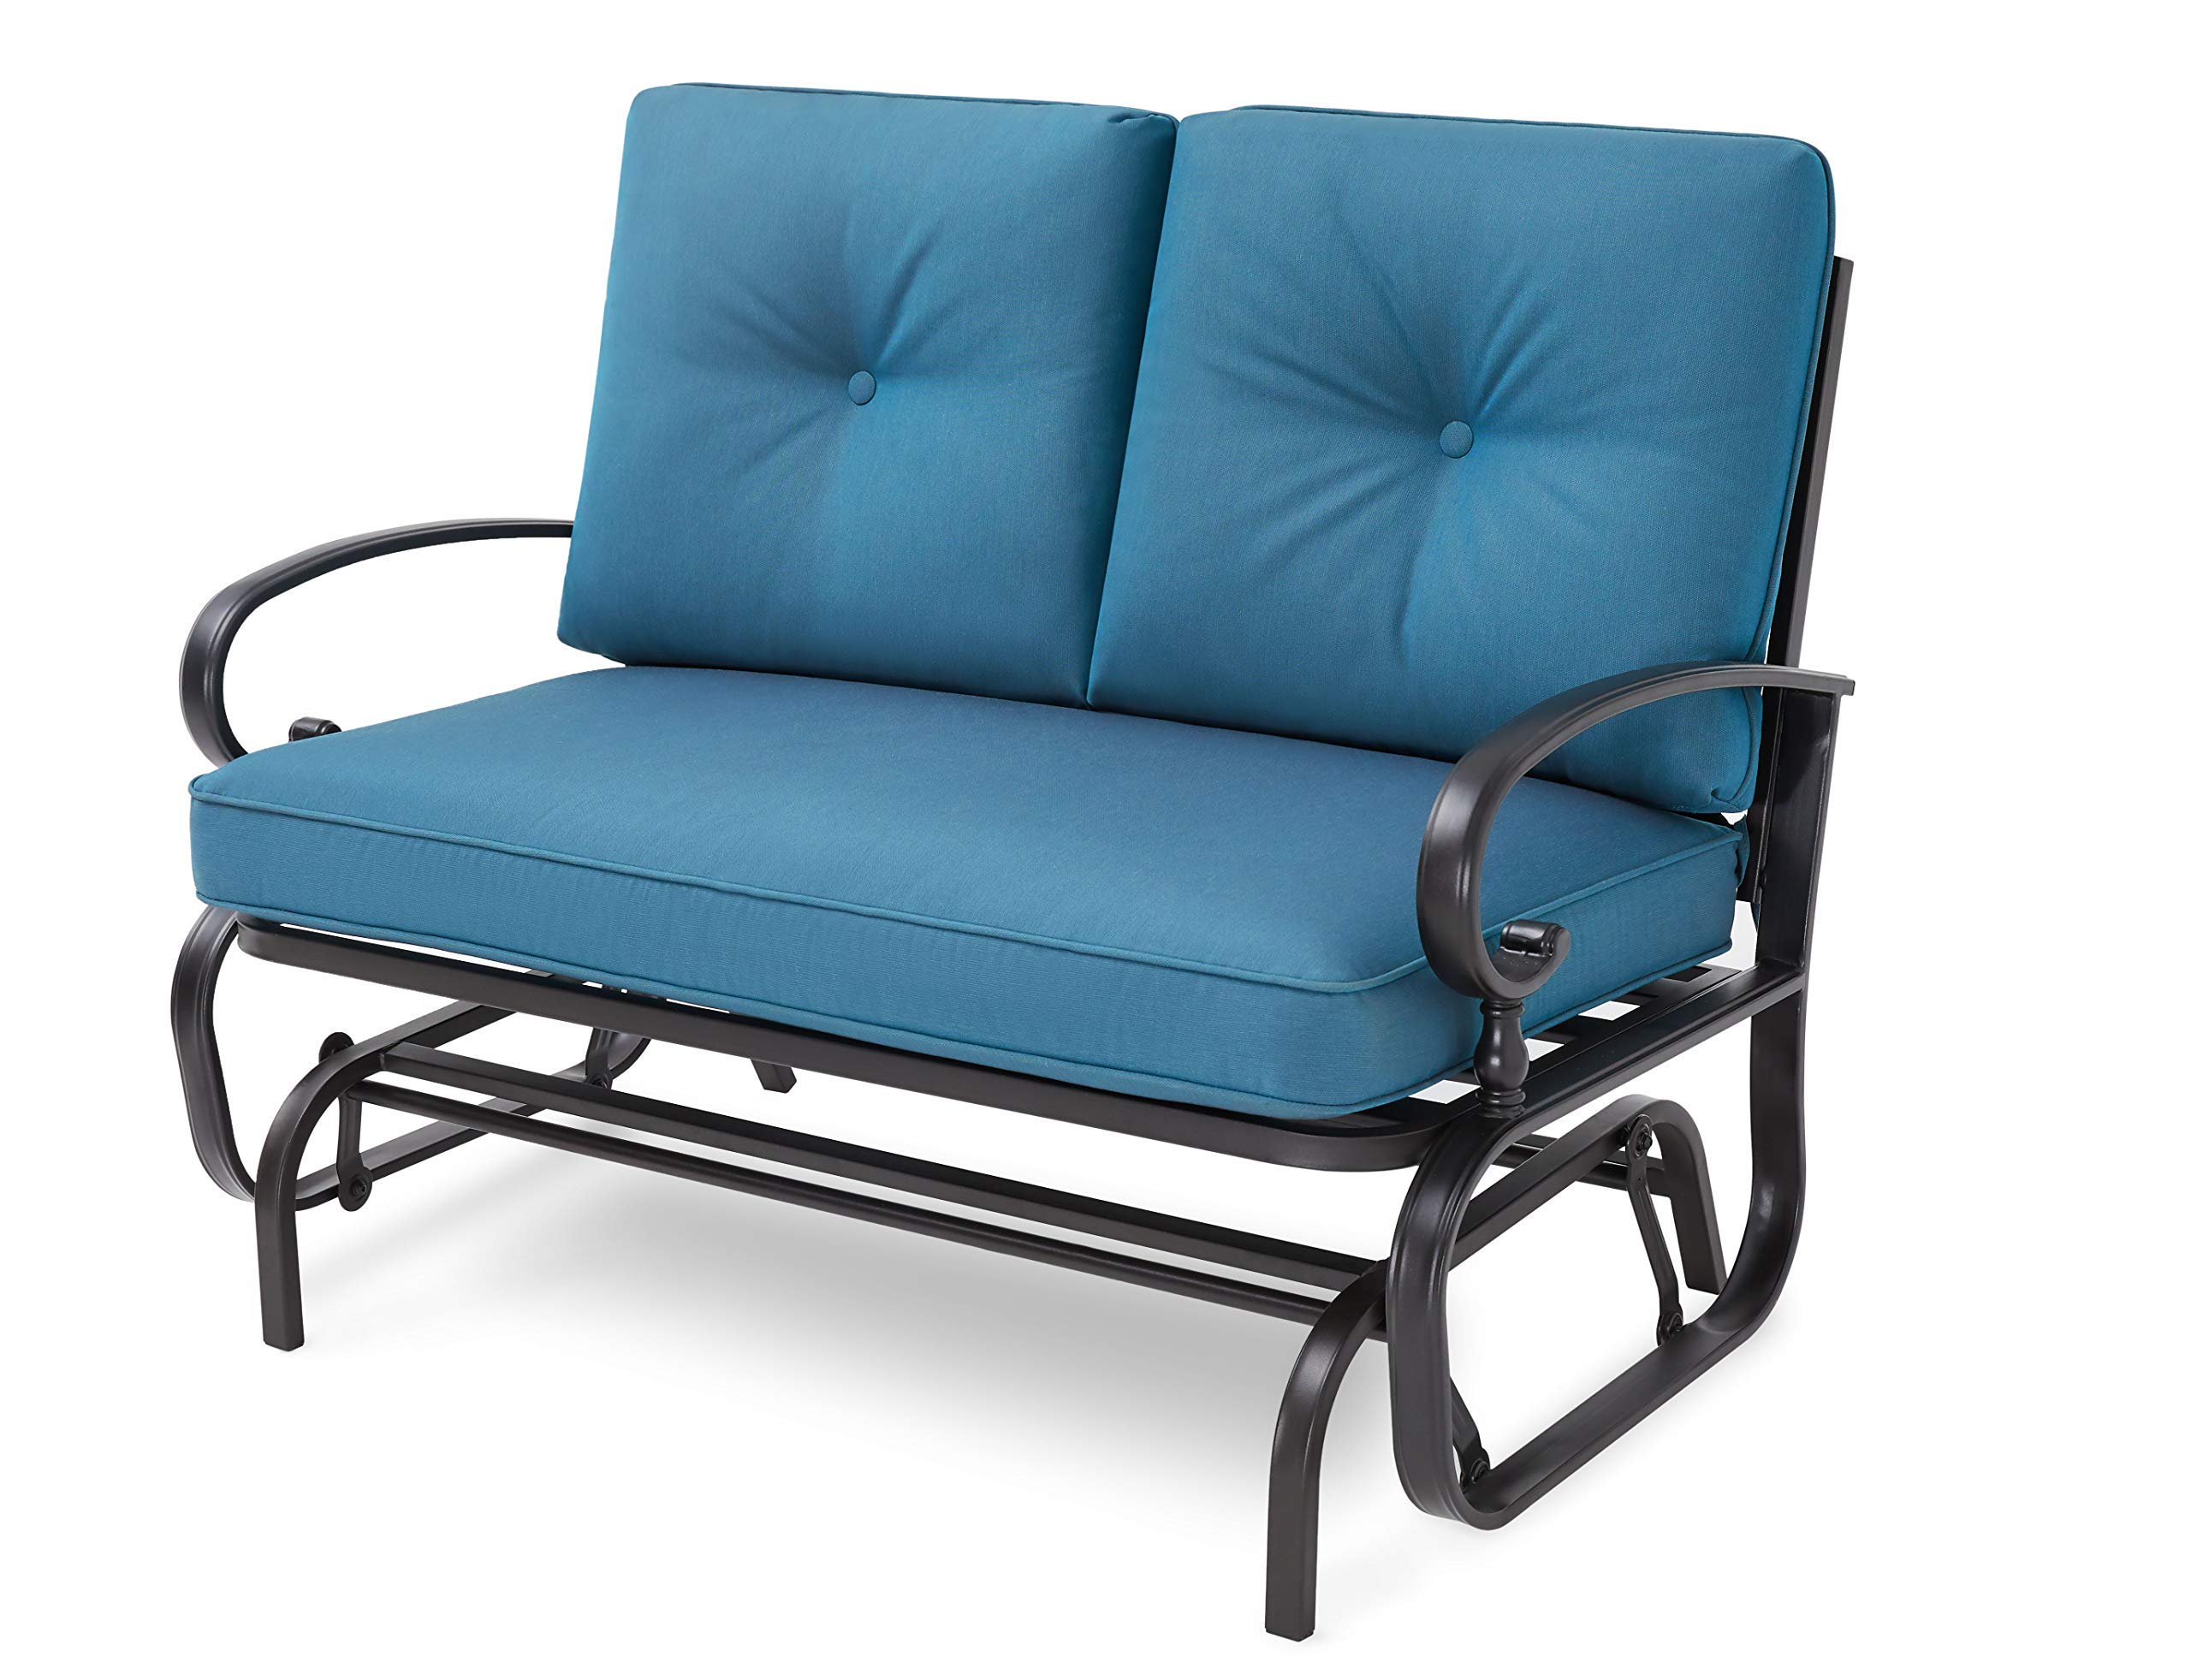 Incbruce Outdoor Swing Glider Rocking Chair Patio Bench for 2 Person, Garden Loveseat Seating Patio Wrought Iron Chair Set with Cushion, Peacock Blue by Incbruce